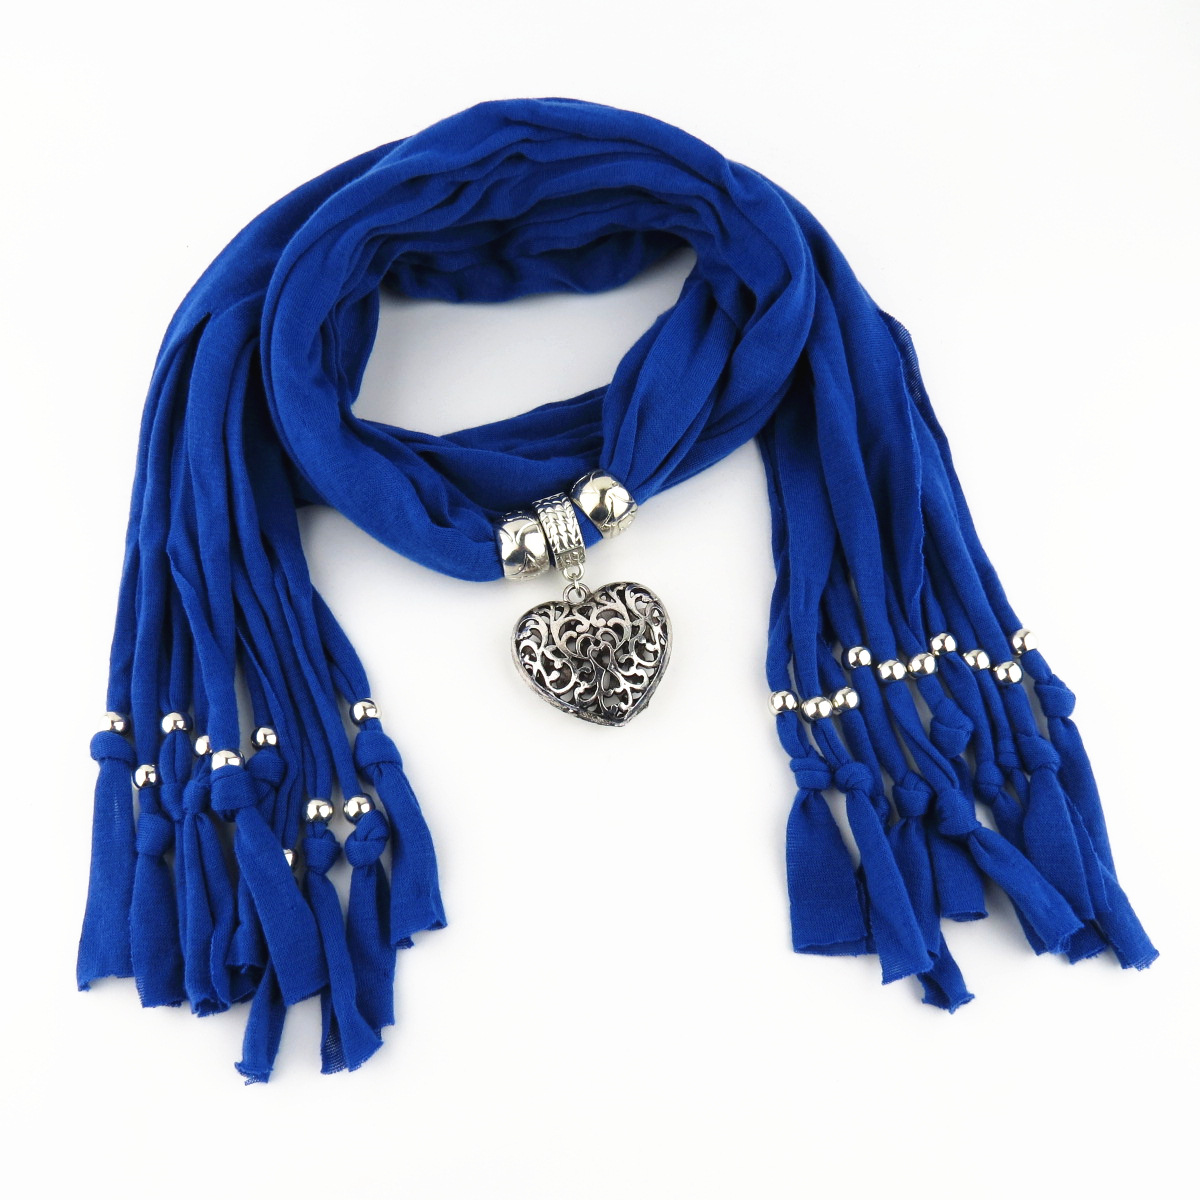 Feitong 2017 New Fashion Winter Warm Scarf Women Charms Scarf Alloy Hearts Drop Pendant Jewelry Scarves Necklace Scarf 13 colors